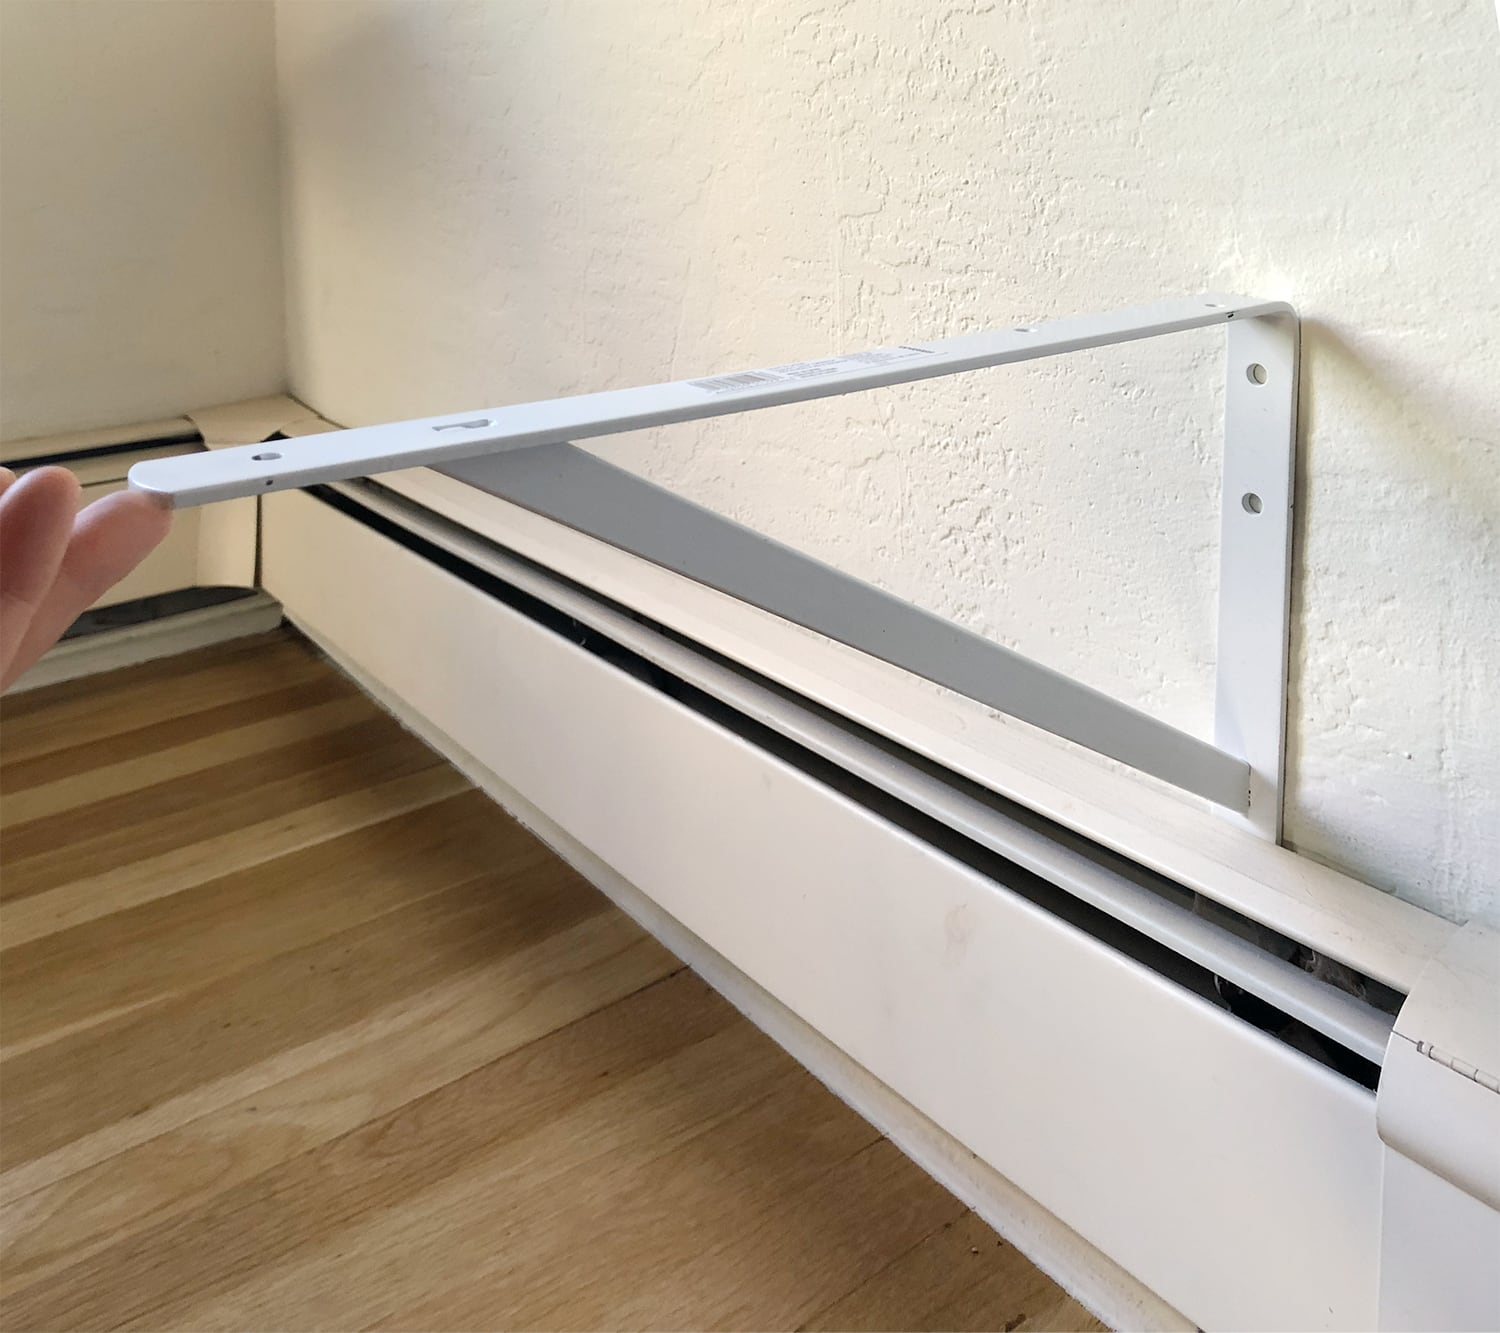 steel bracket above baseboard radiator